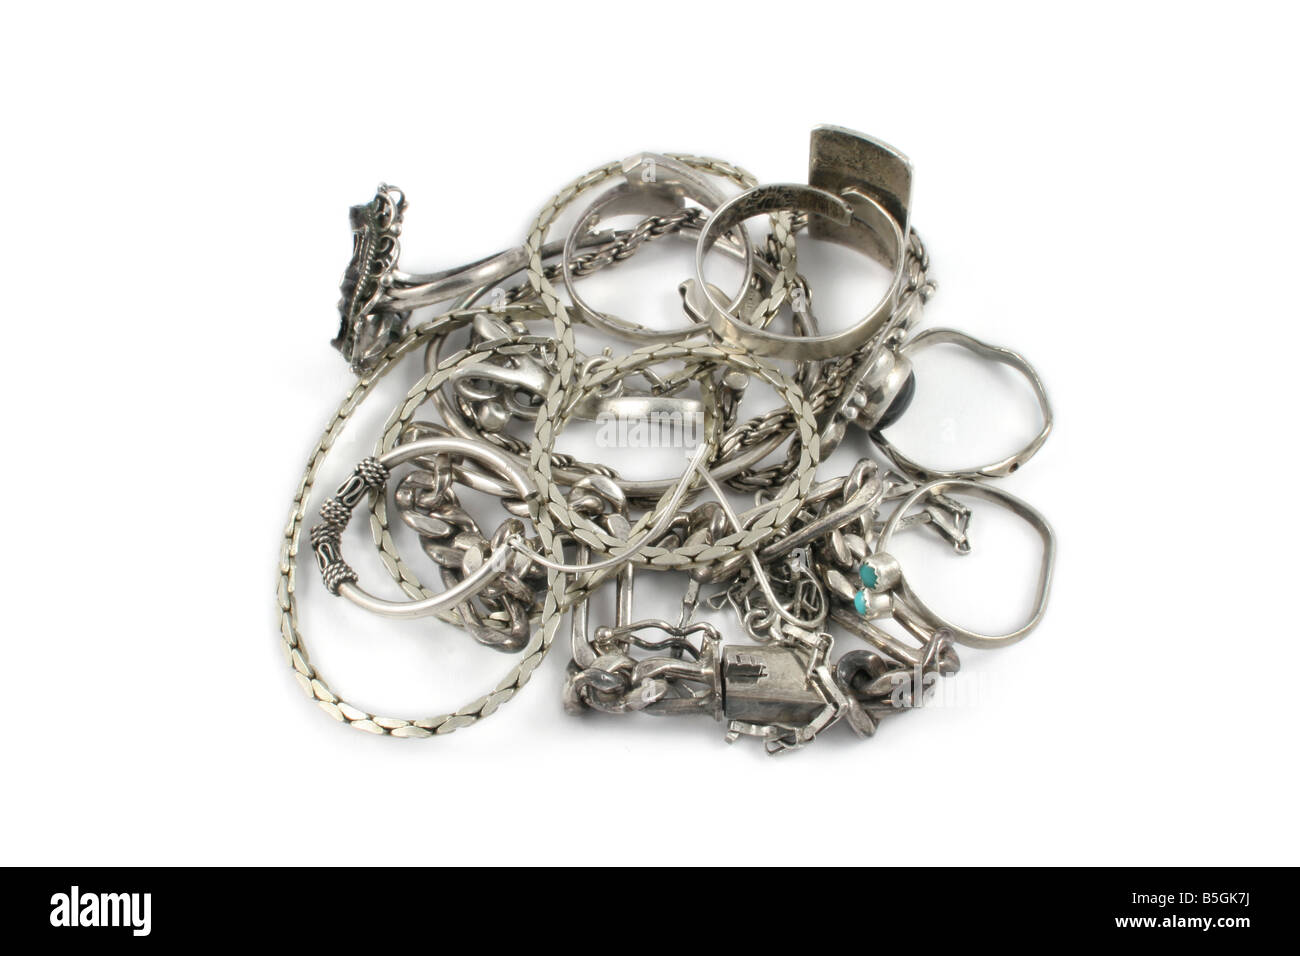 Scrap sterling silver jewelry. - Stock Image